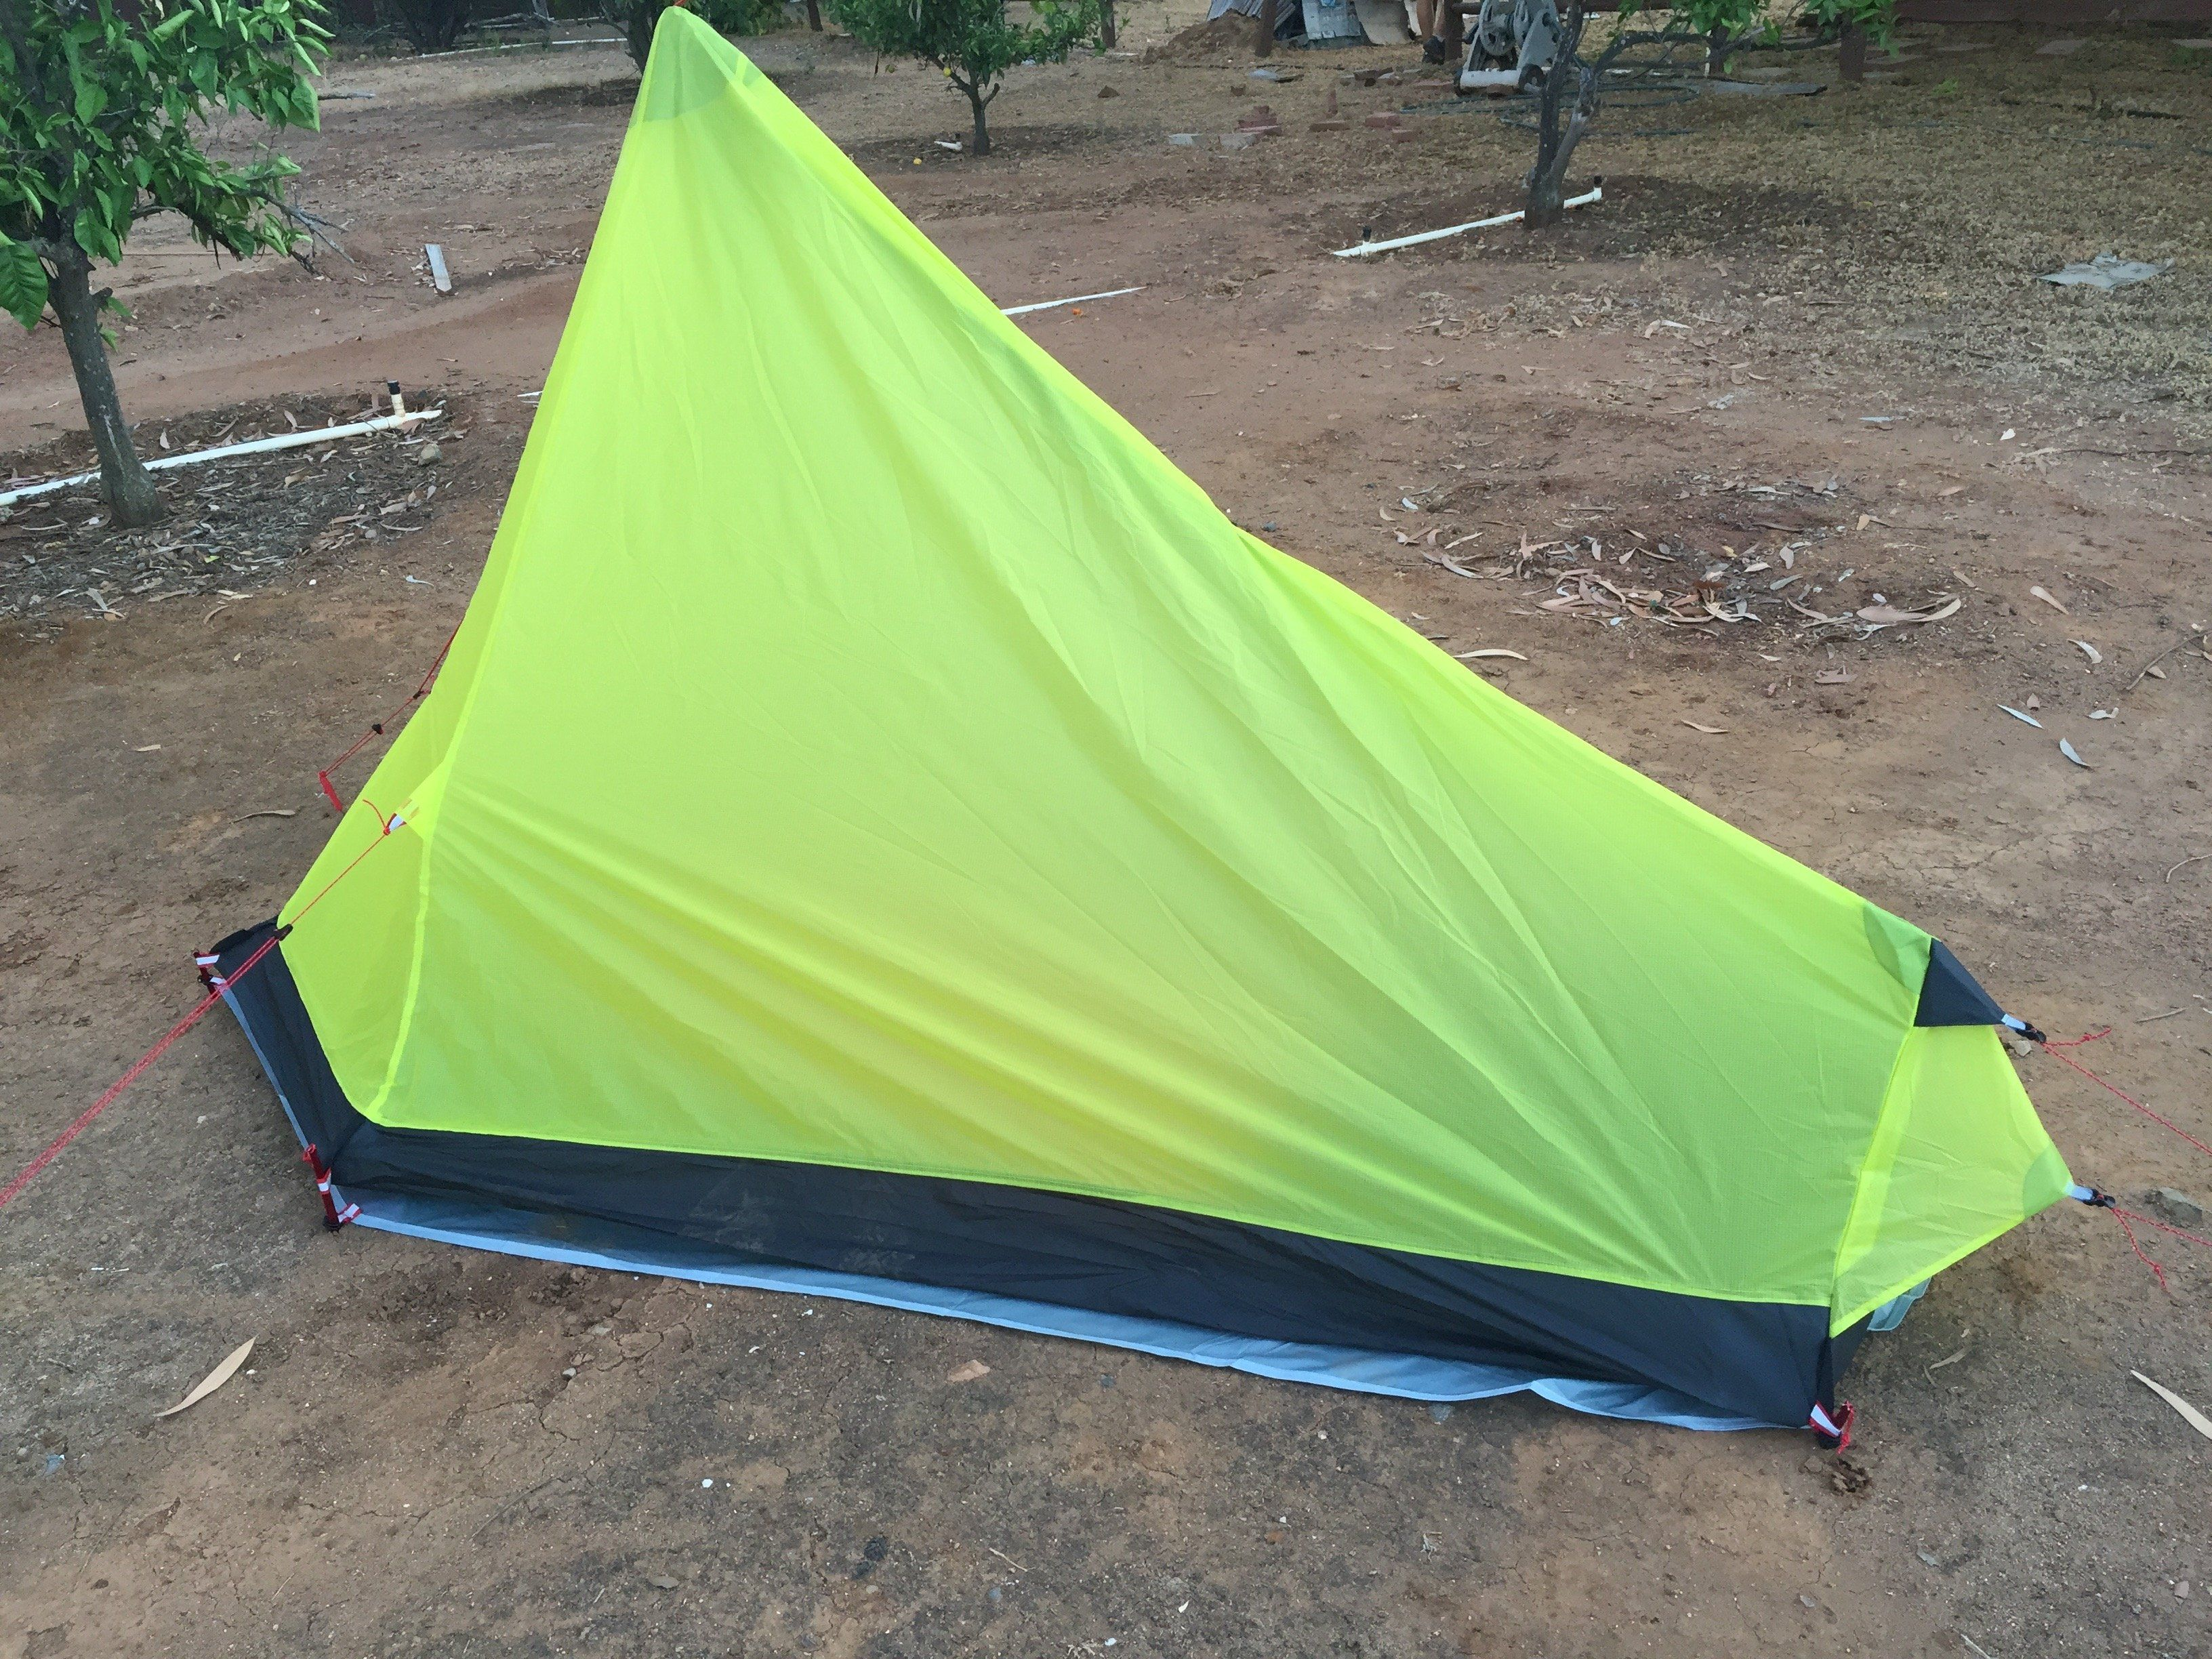 Backpack tent · 1 layer tent. The inner (mesh tent) is sewed with the rainfly. & 1 person 3 season Ultralight Silnylon Backpacking Tent | Tents and ...